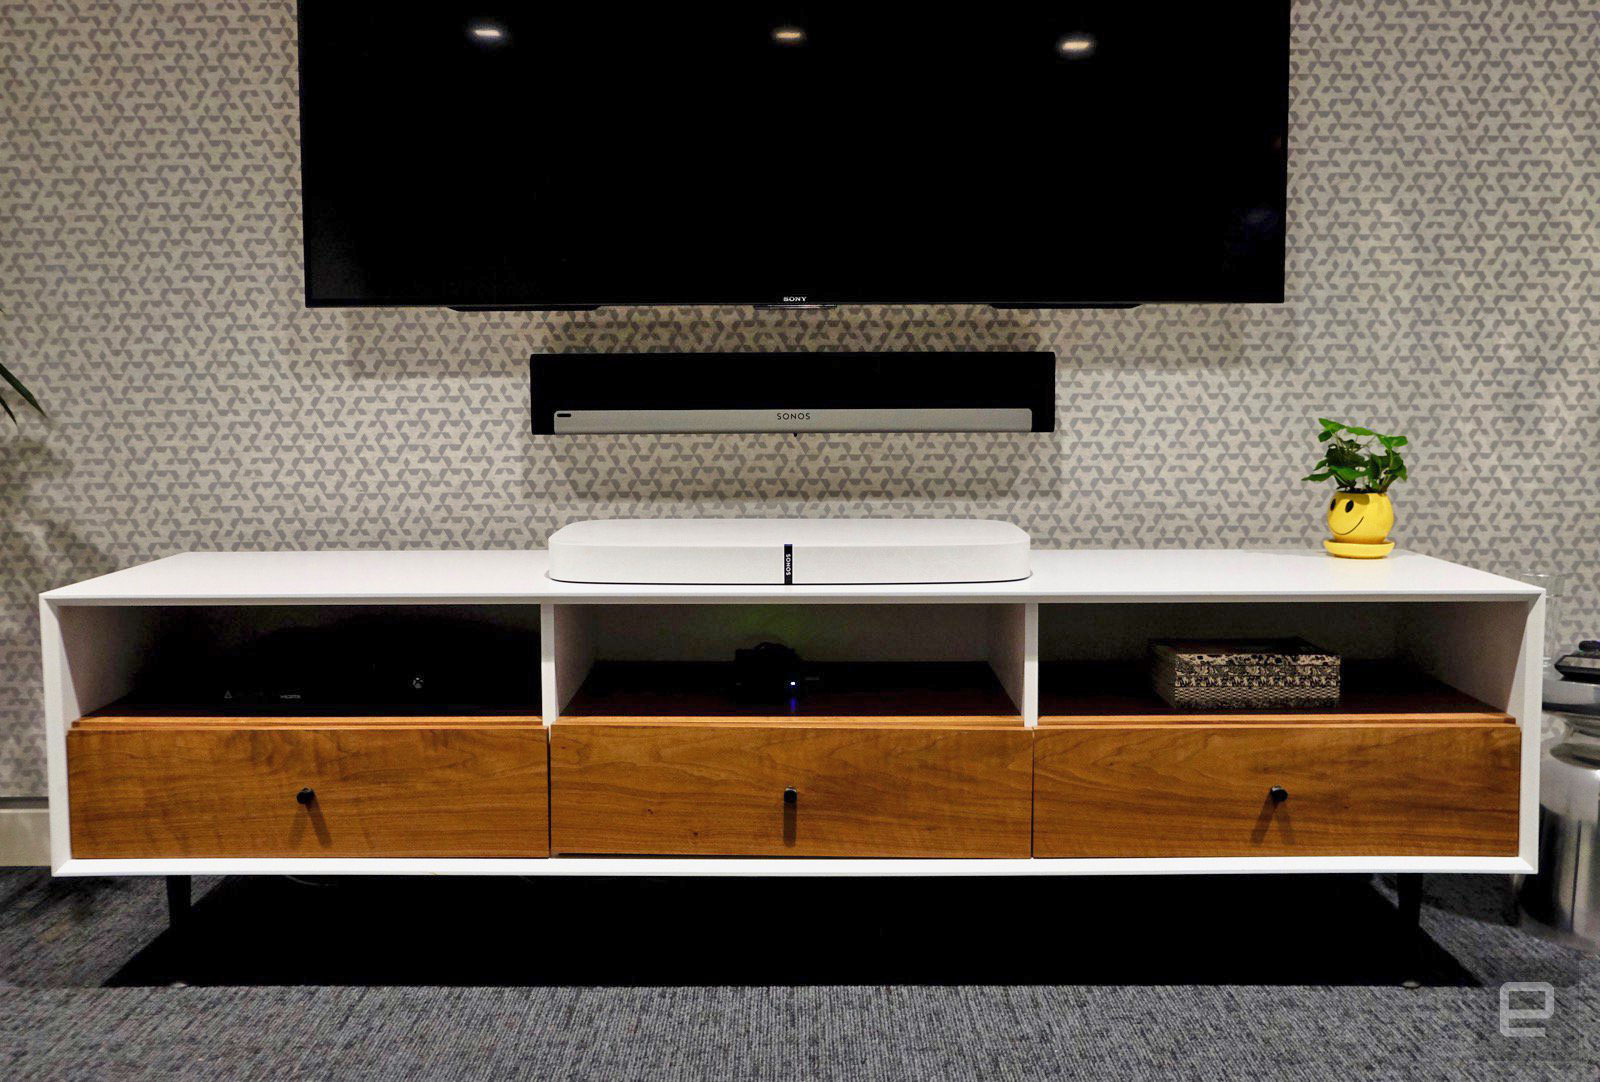 The Sonos Playbase, Pictured Here Below The Sonos Playbar Mounted To The  Wall.